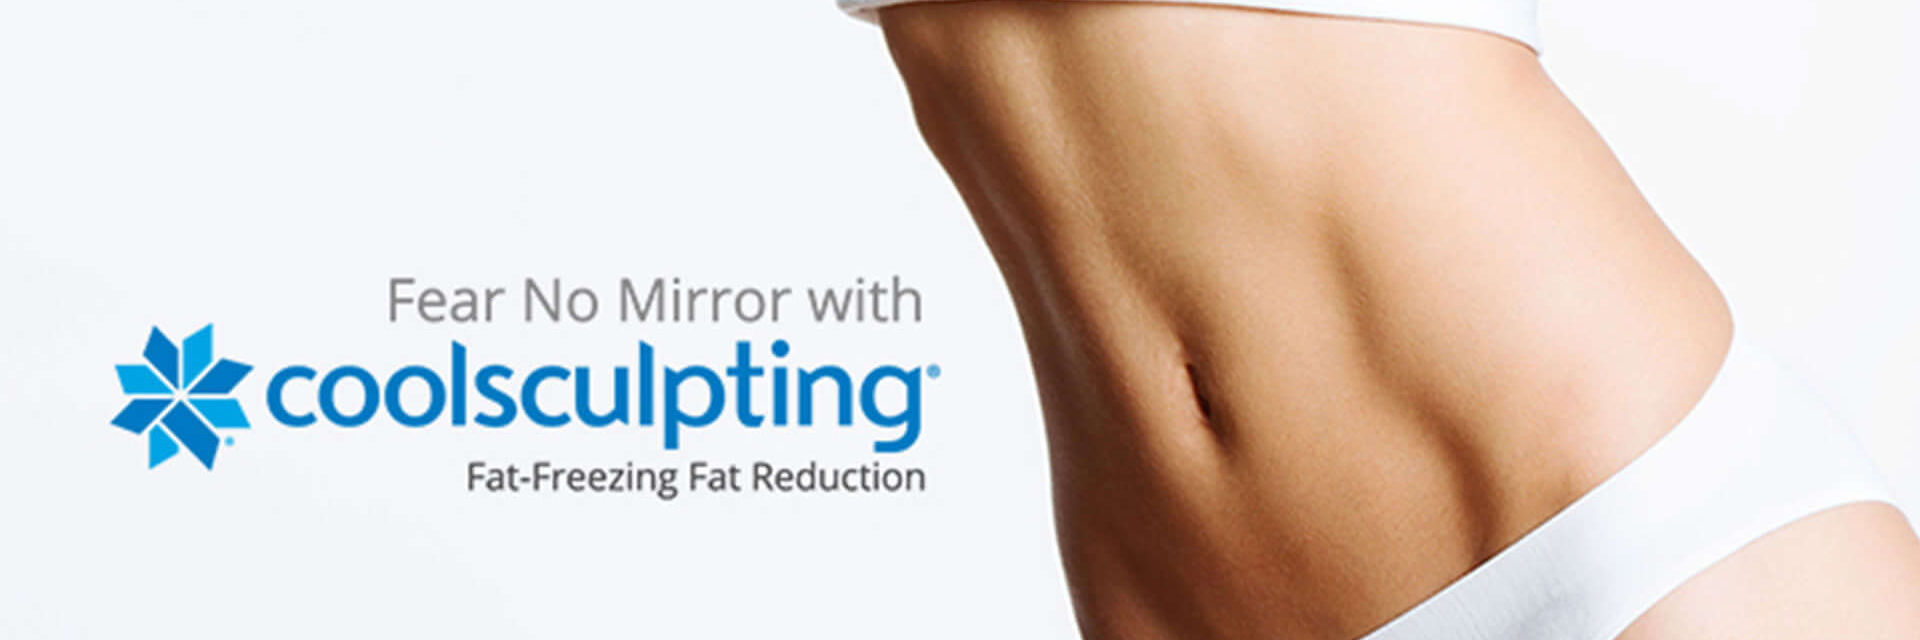 LookingFor Services Of Coolsculpting Manhattan? post thumbnail image